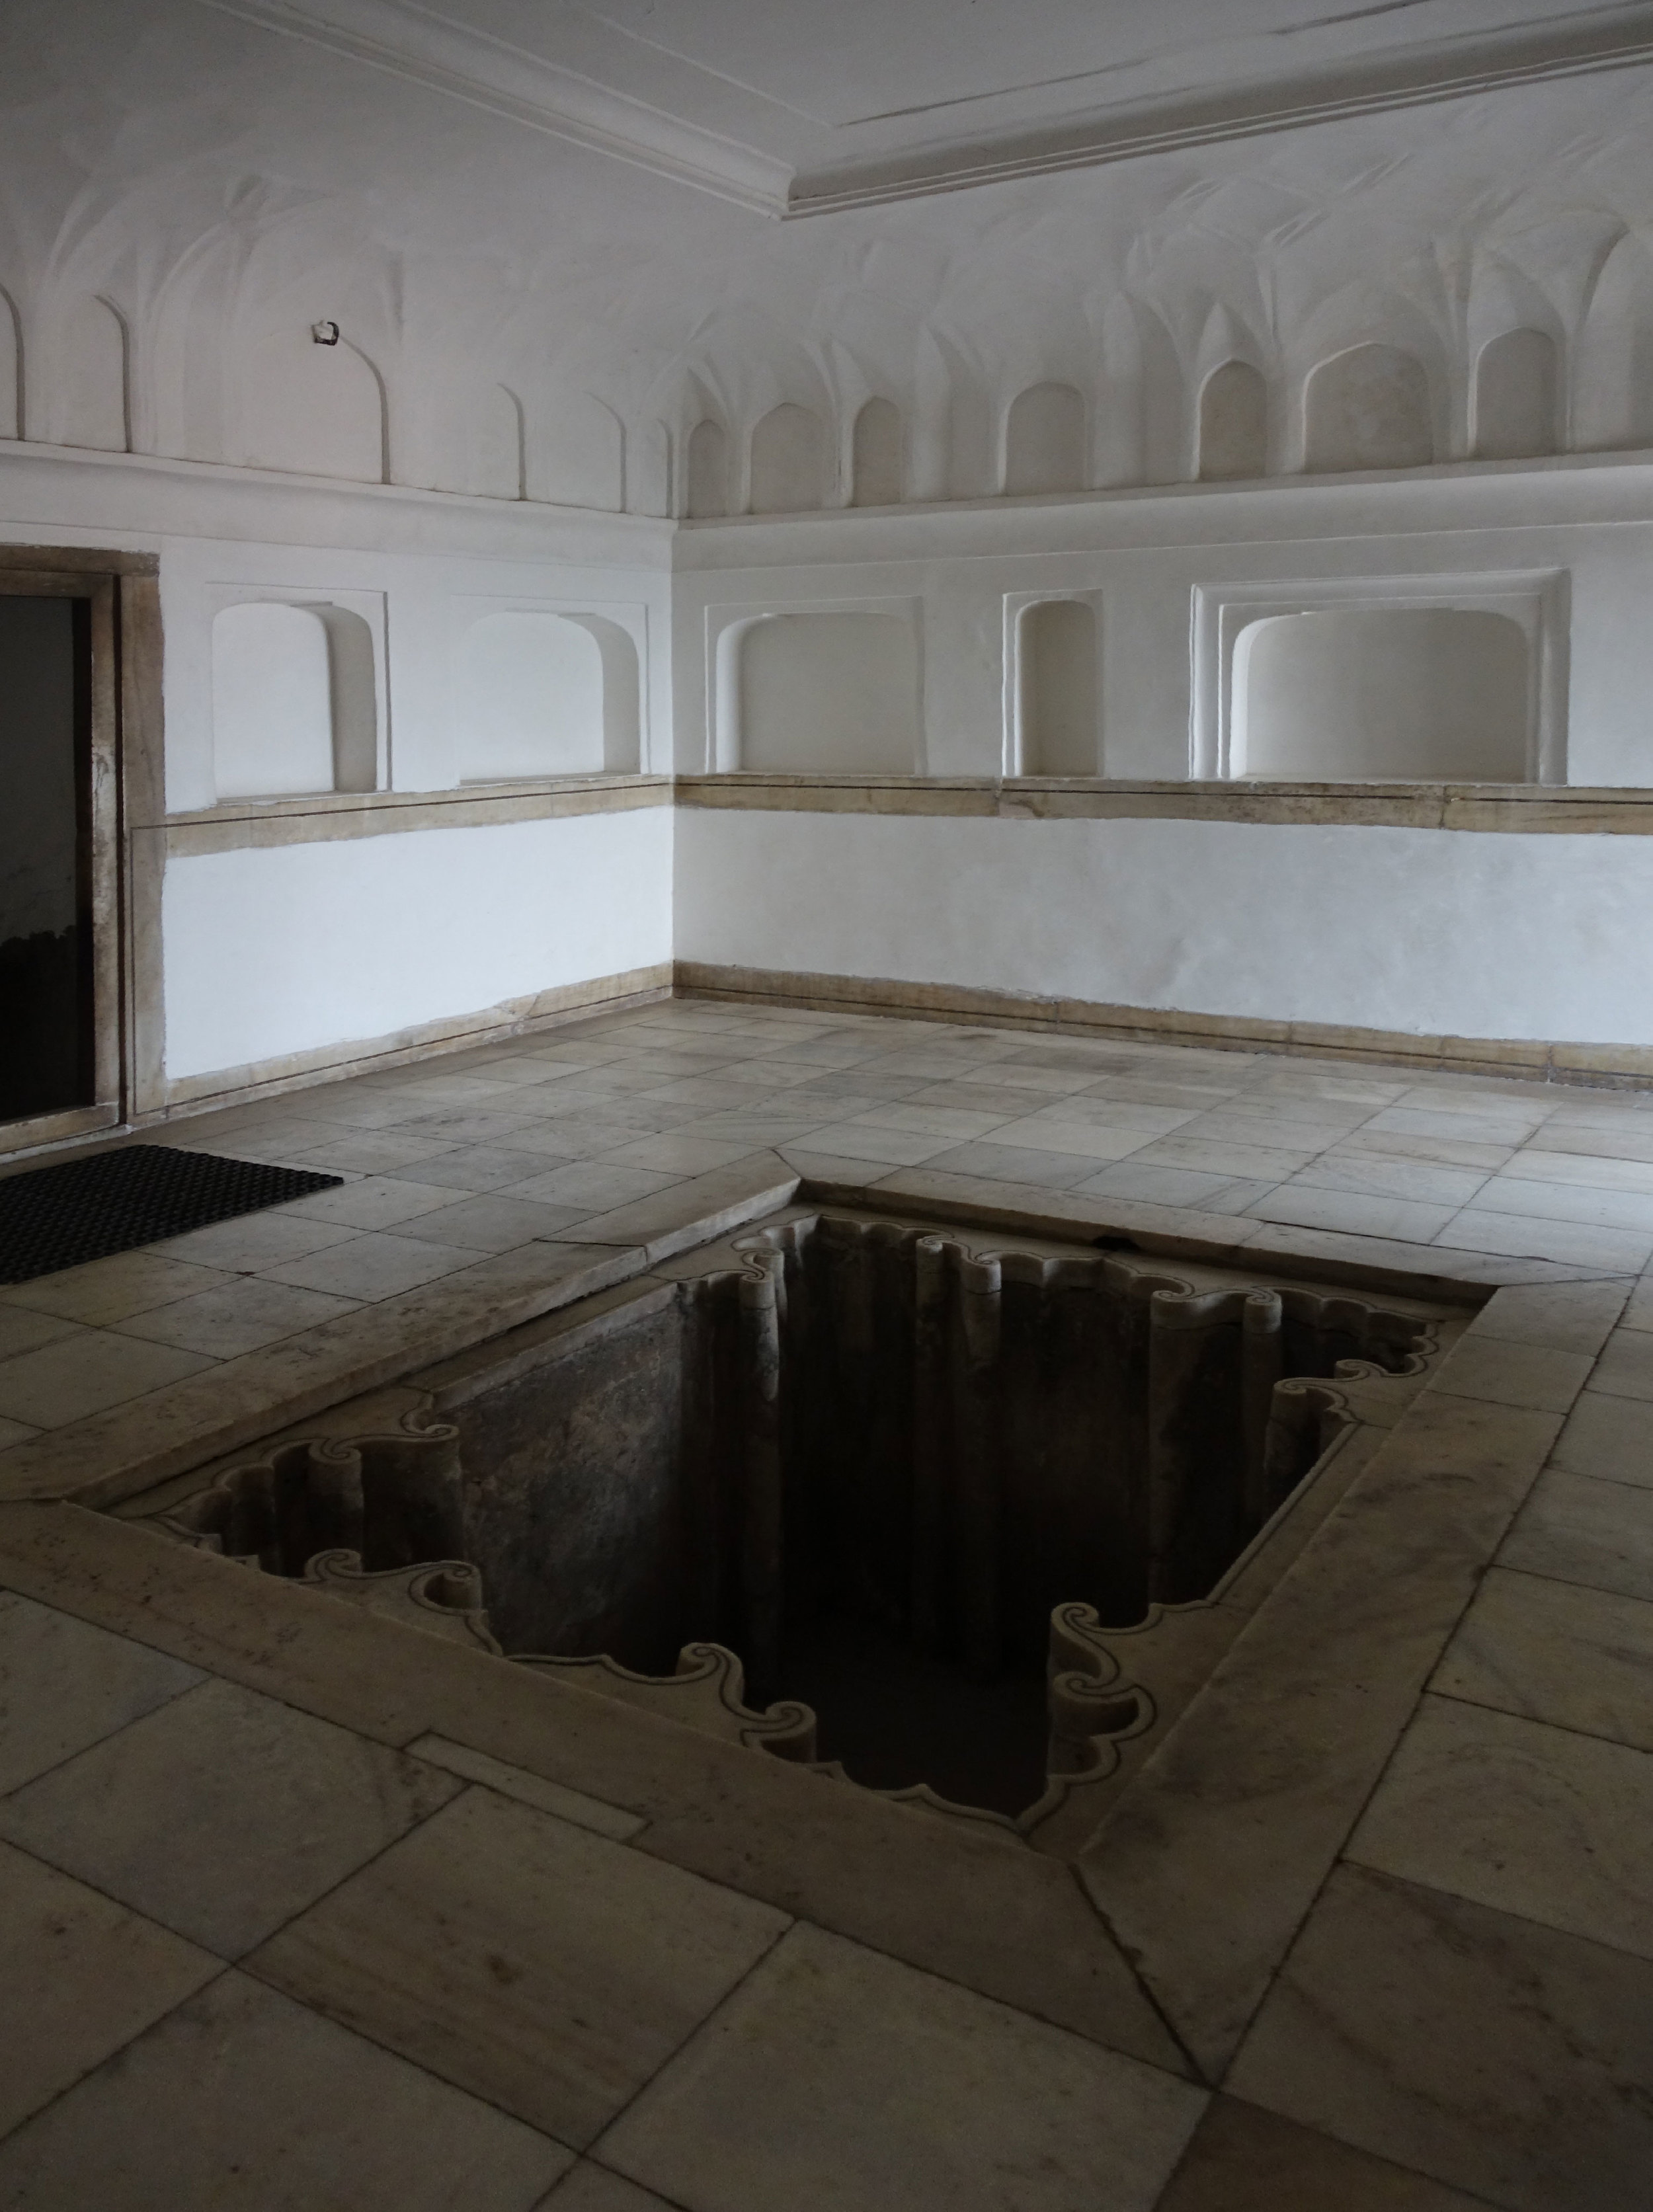 A royal tub/spa room next to the queens